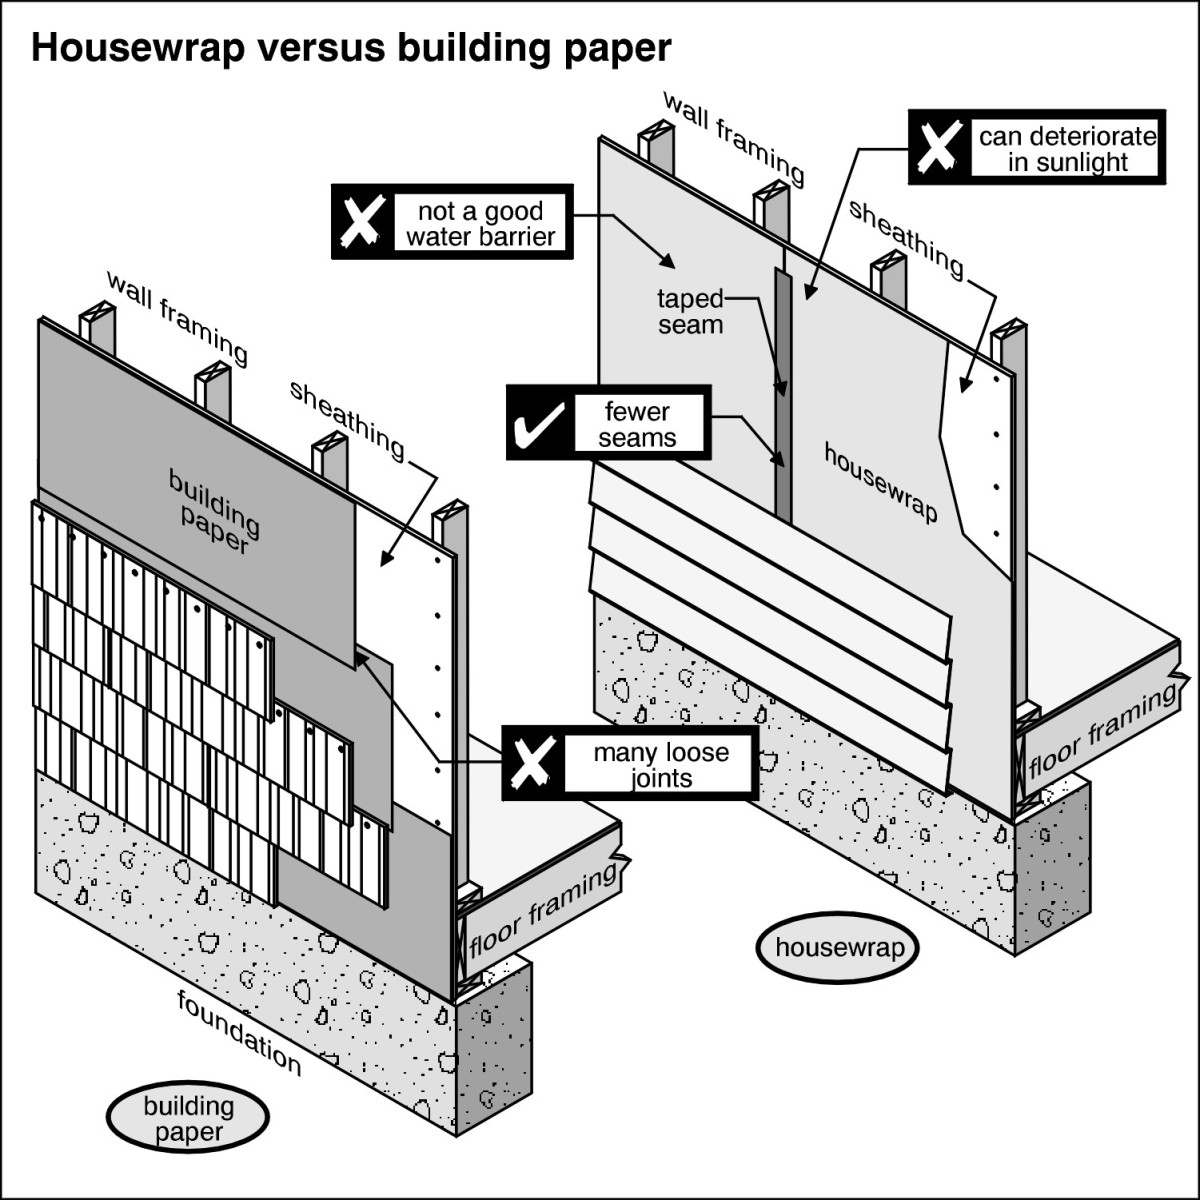 building-paper-vs-house-wrap-which-one-is-better